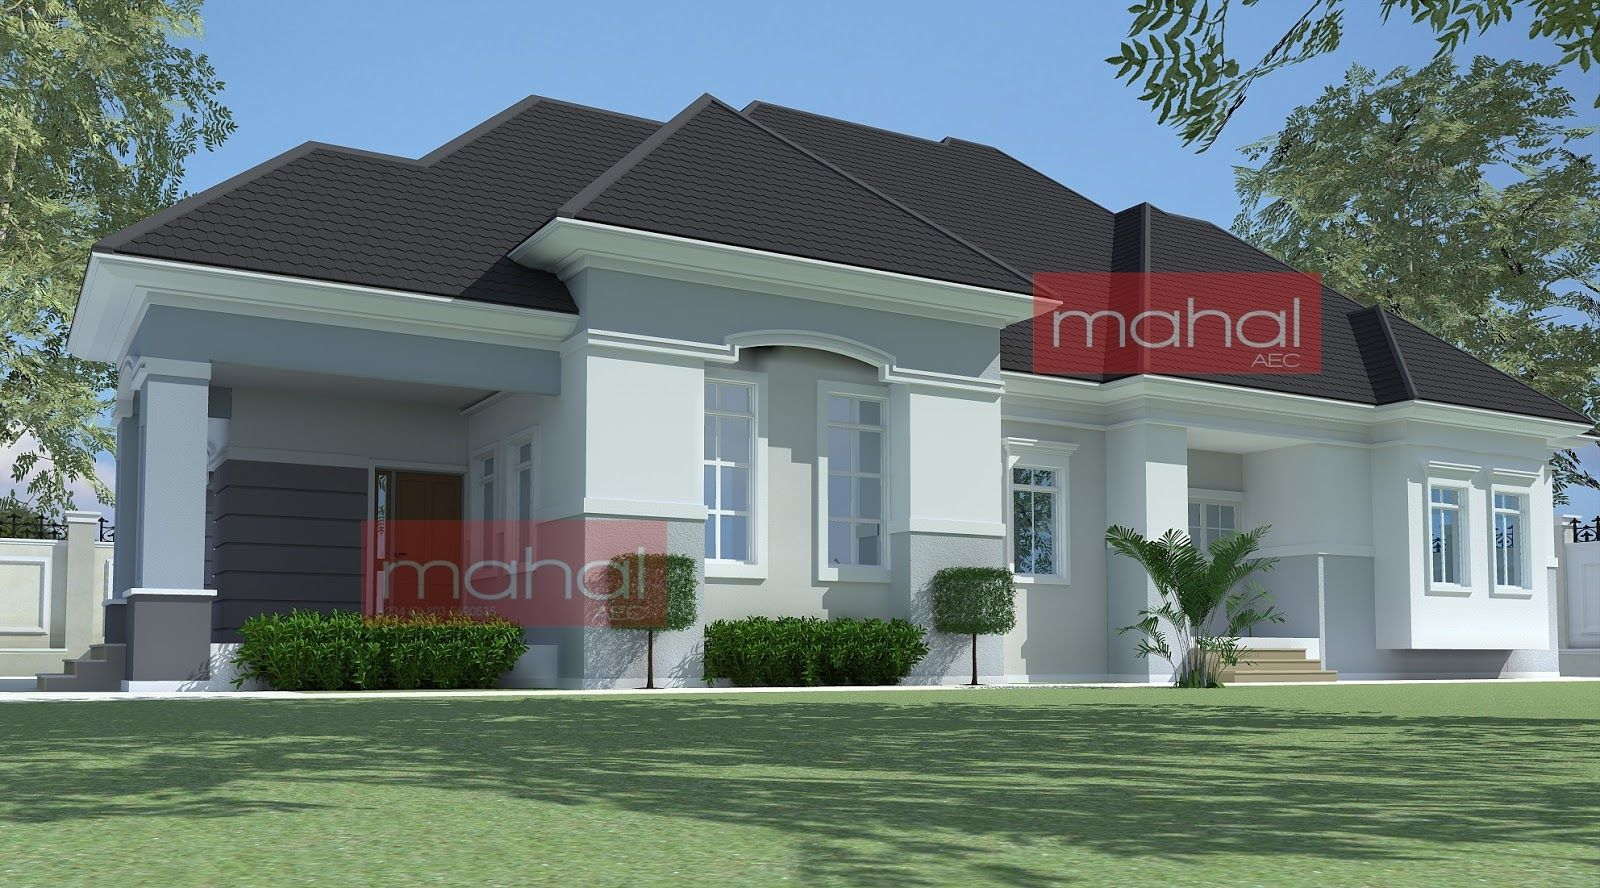 4 bedroom bungalow plan in nigeria 4 bedroom bungalow Modern bungalow plans